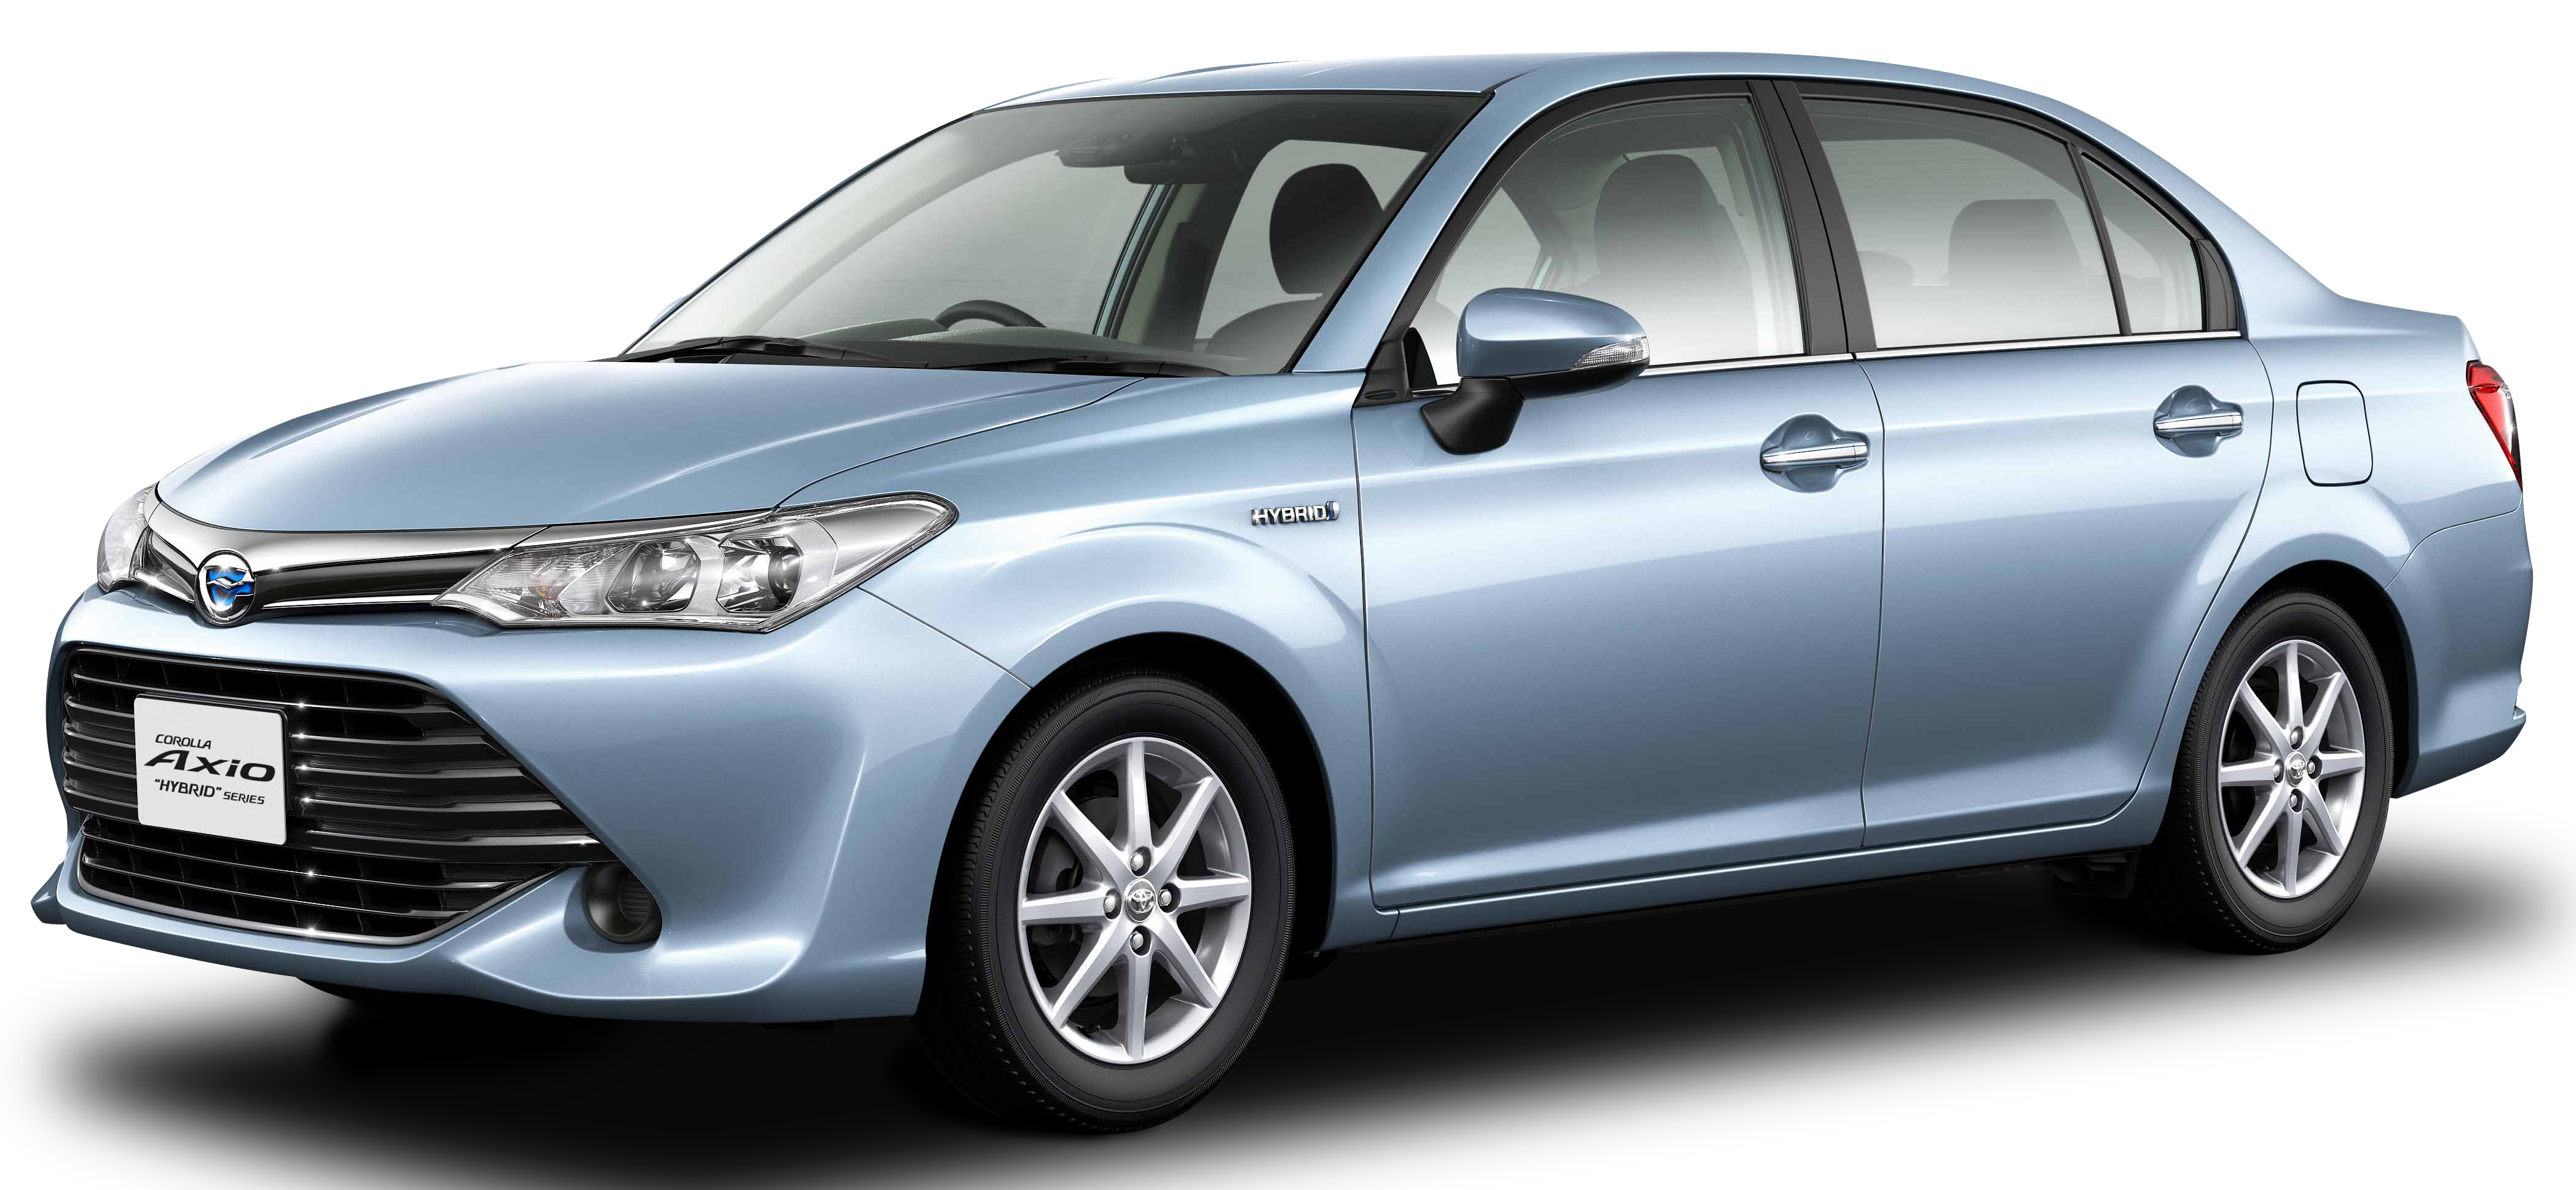 Toyota Corolla Axio, Fielder facelift launched in Japan Image 325673